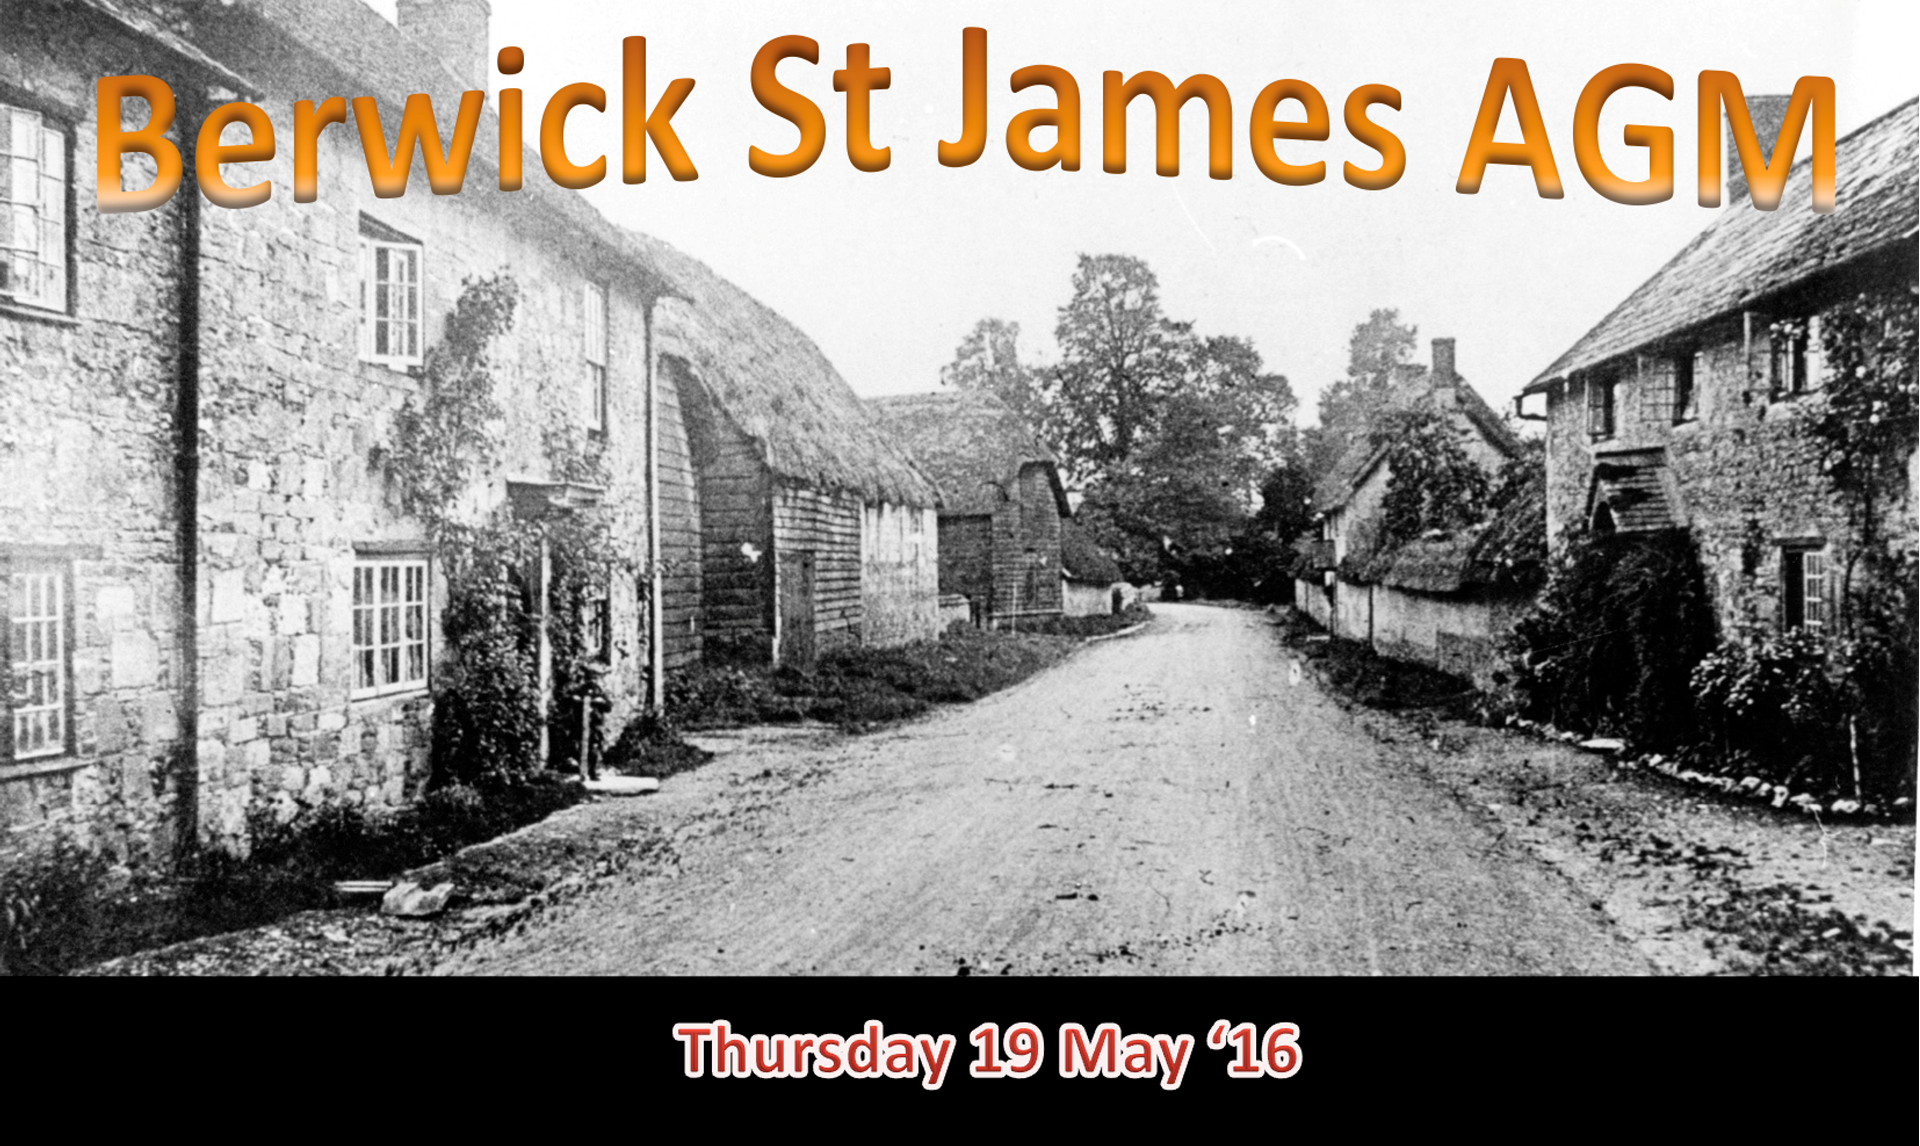 Berwick St James Parish Community Village Meeting - 19 May '16